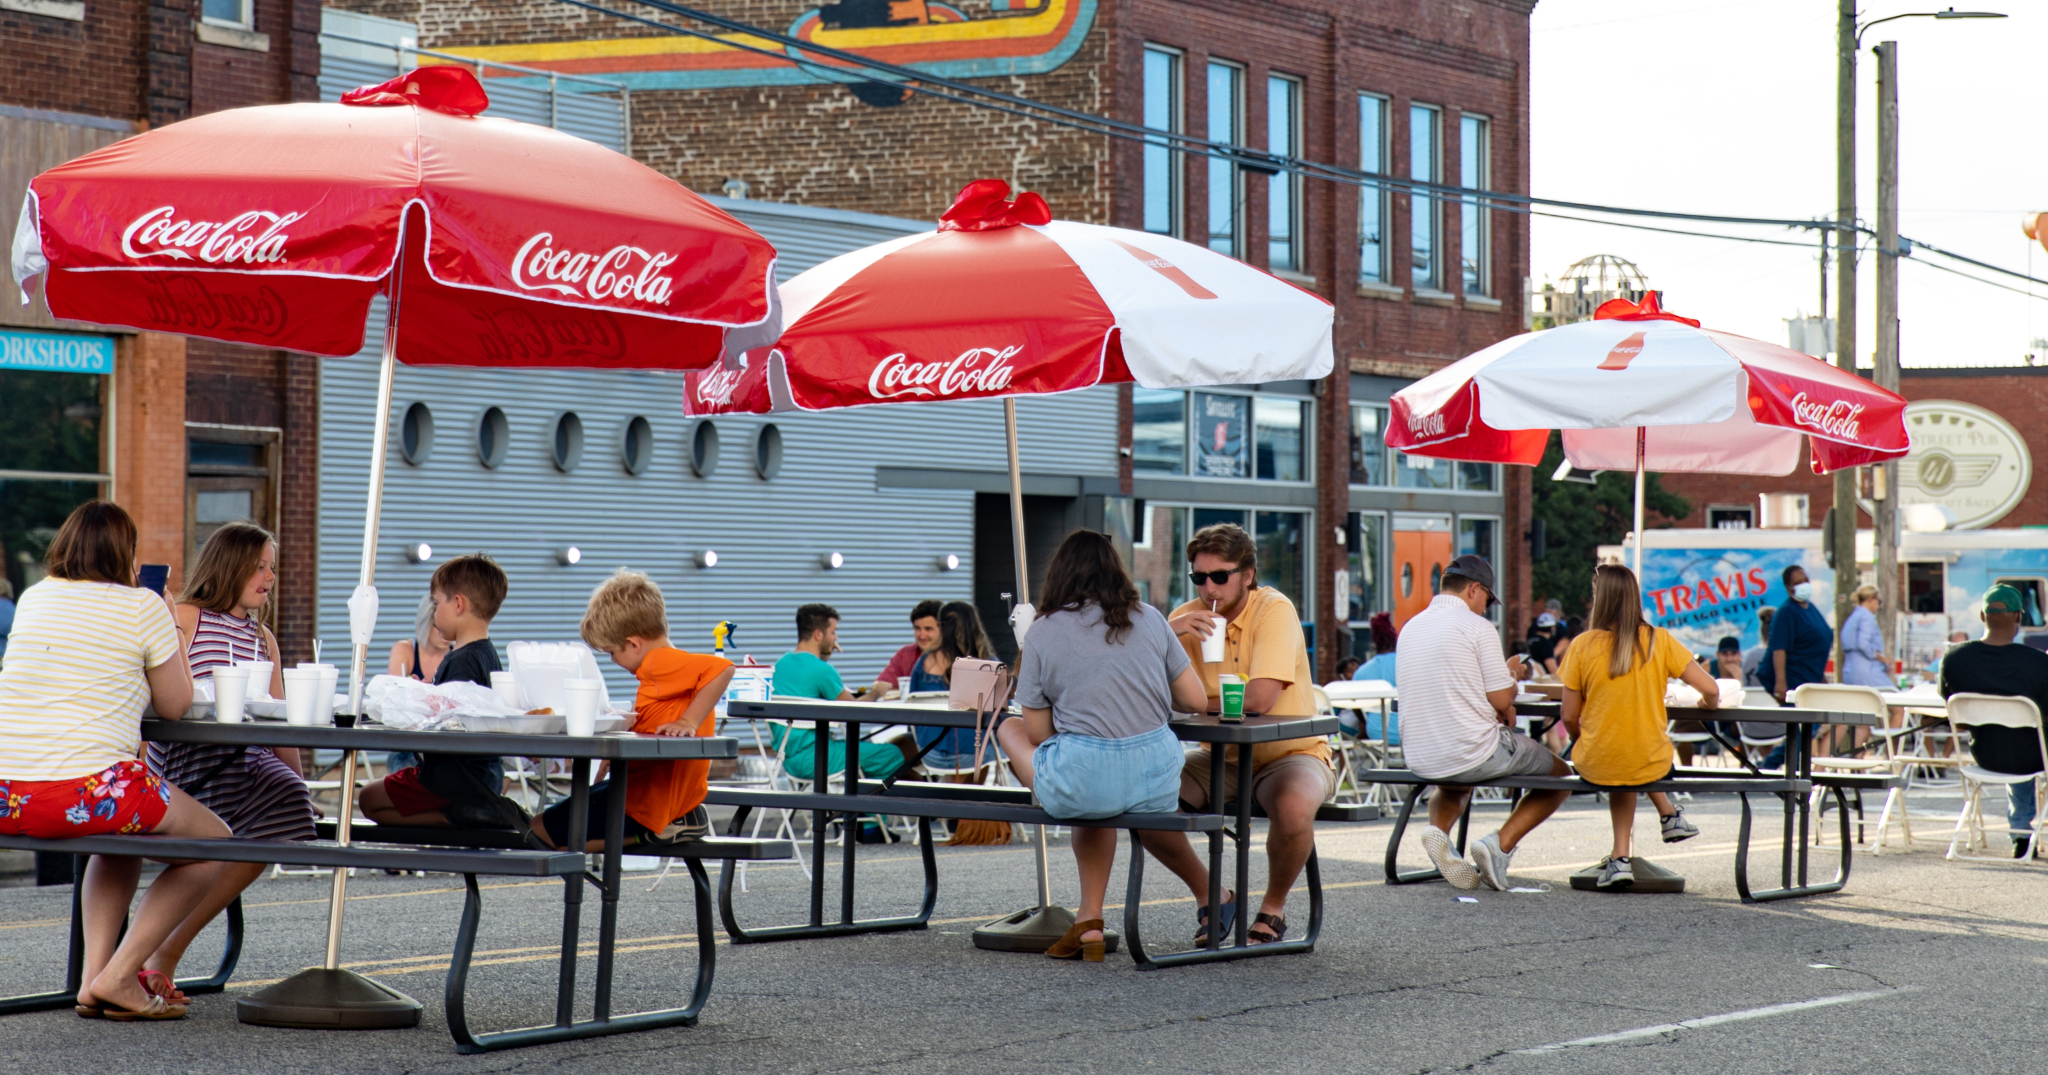 Eat in the Streets takes off this weekend with 2 locations. Here's what you need to know